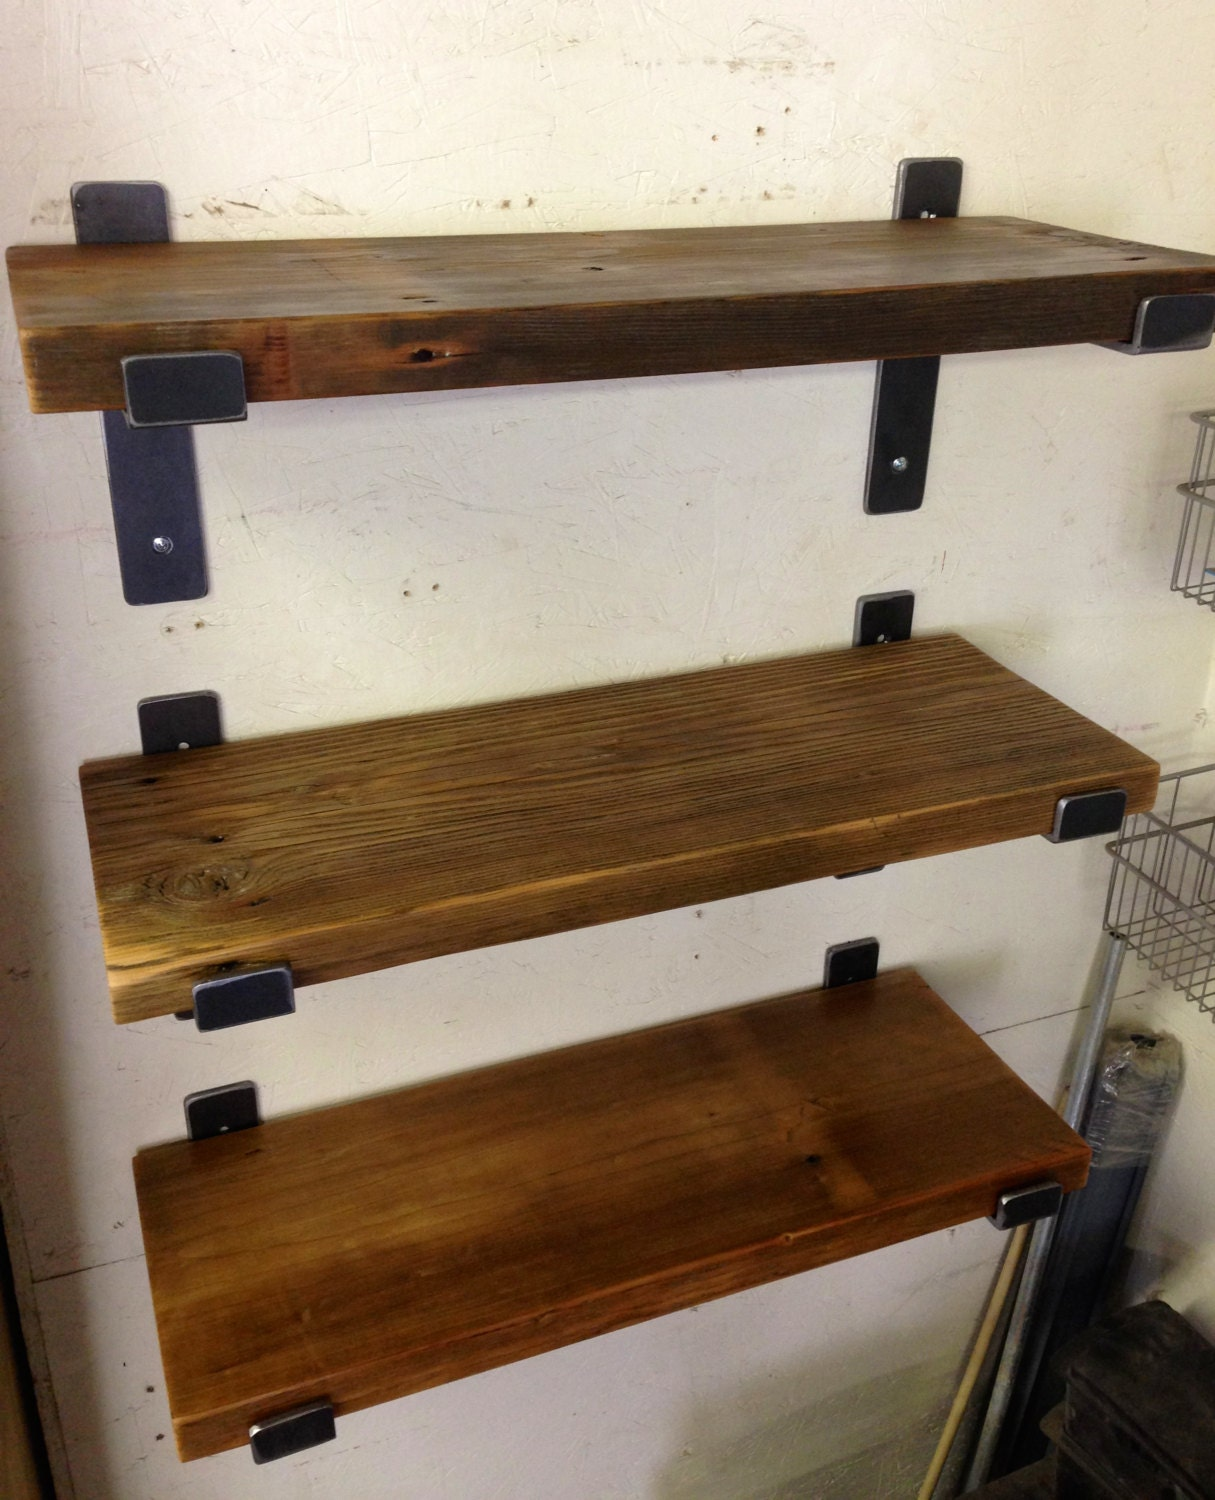 Very Impressive portraiture of One Reclaimed Wood Shelf 24 x 9.5 with Two by LRdesignlab on Etsy with #633F1C color and 1215x1500 pixels